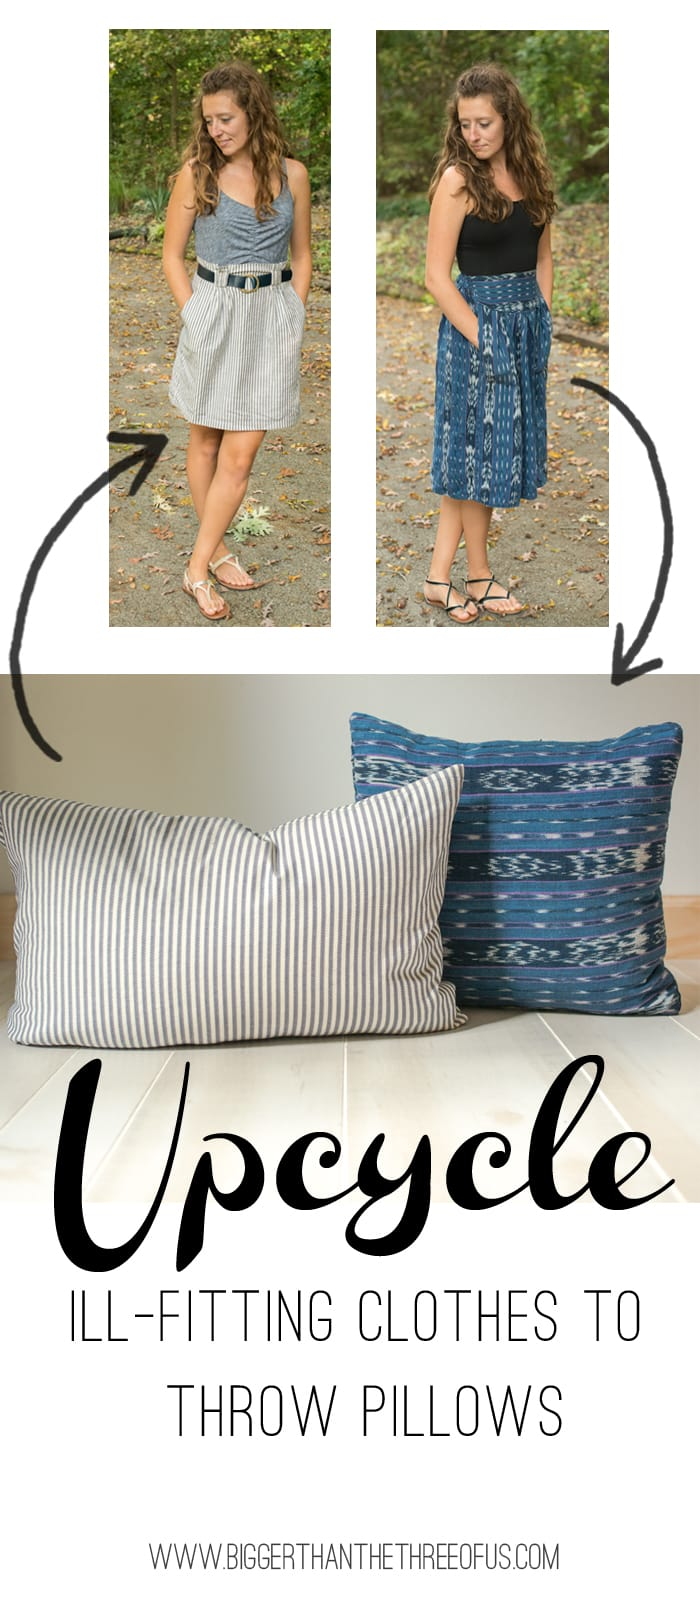 Upcycle Ill Fitting Clothes to Throw Pillows